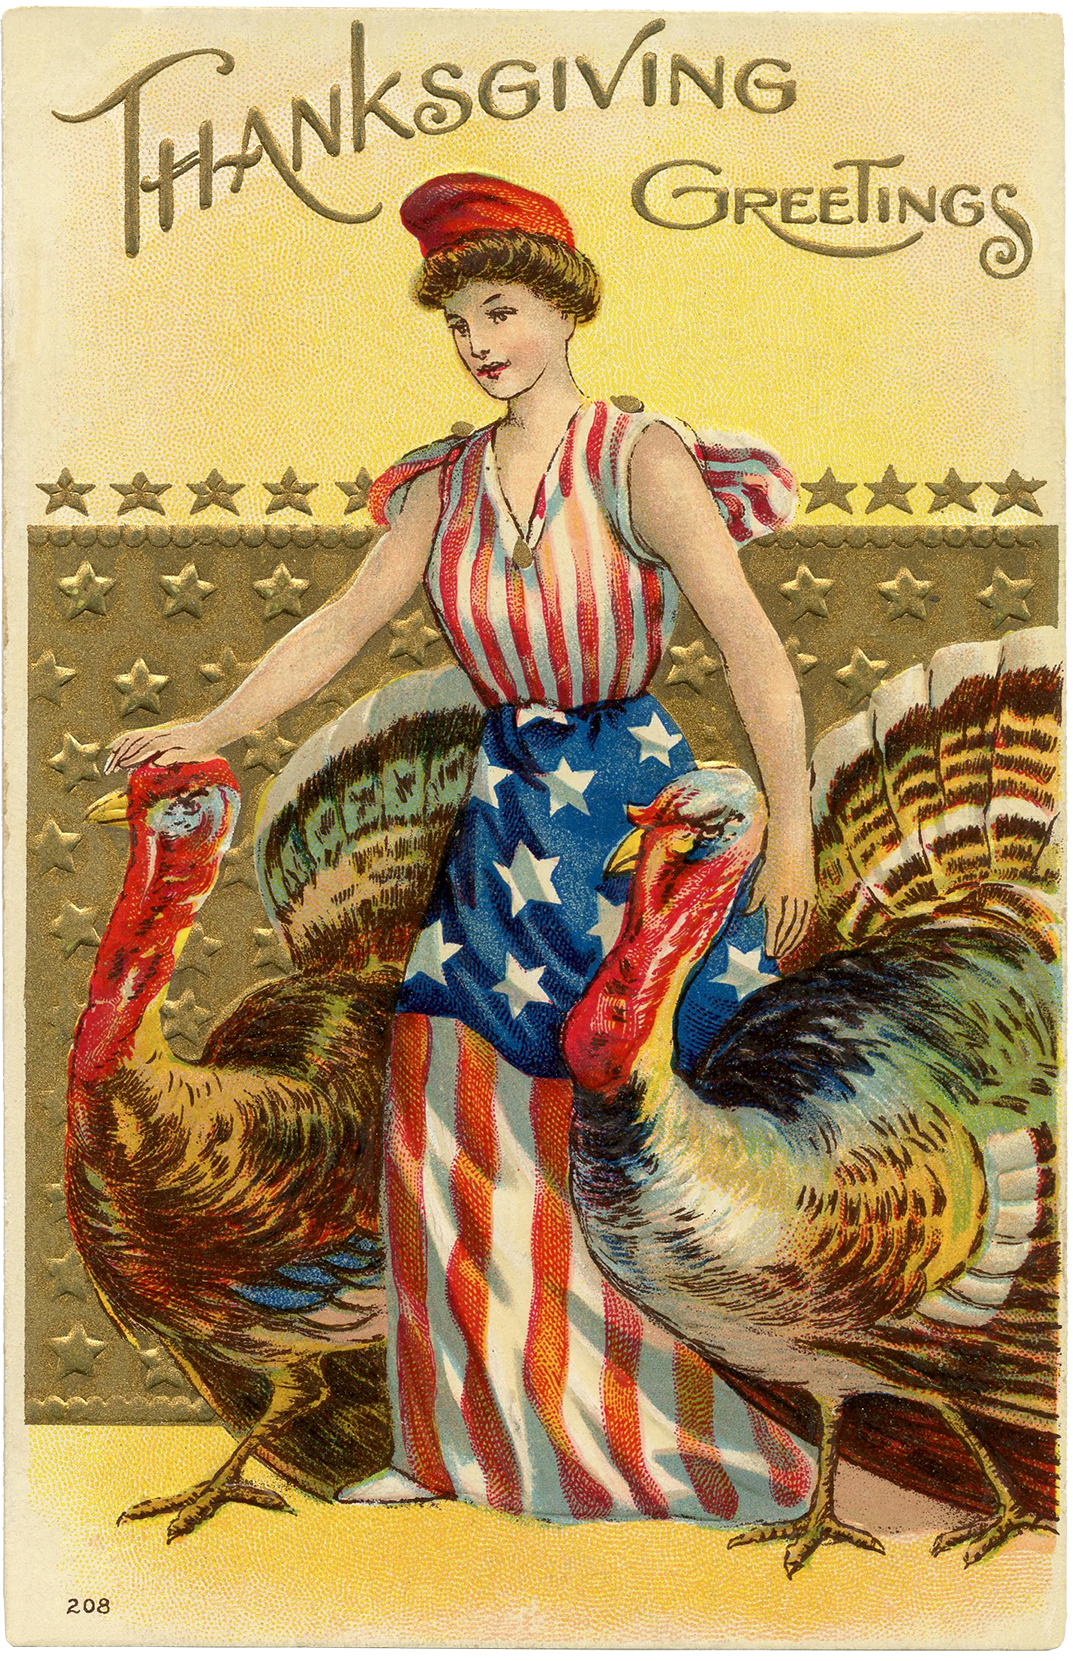 Free Thanksgiving Image - Patriotic - The Graphics Fairy